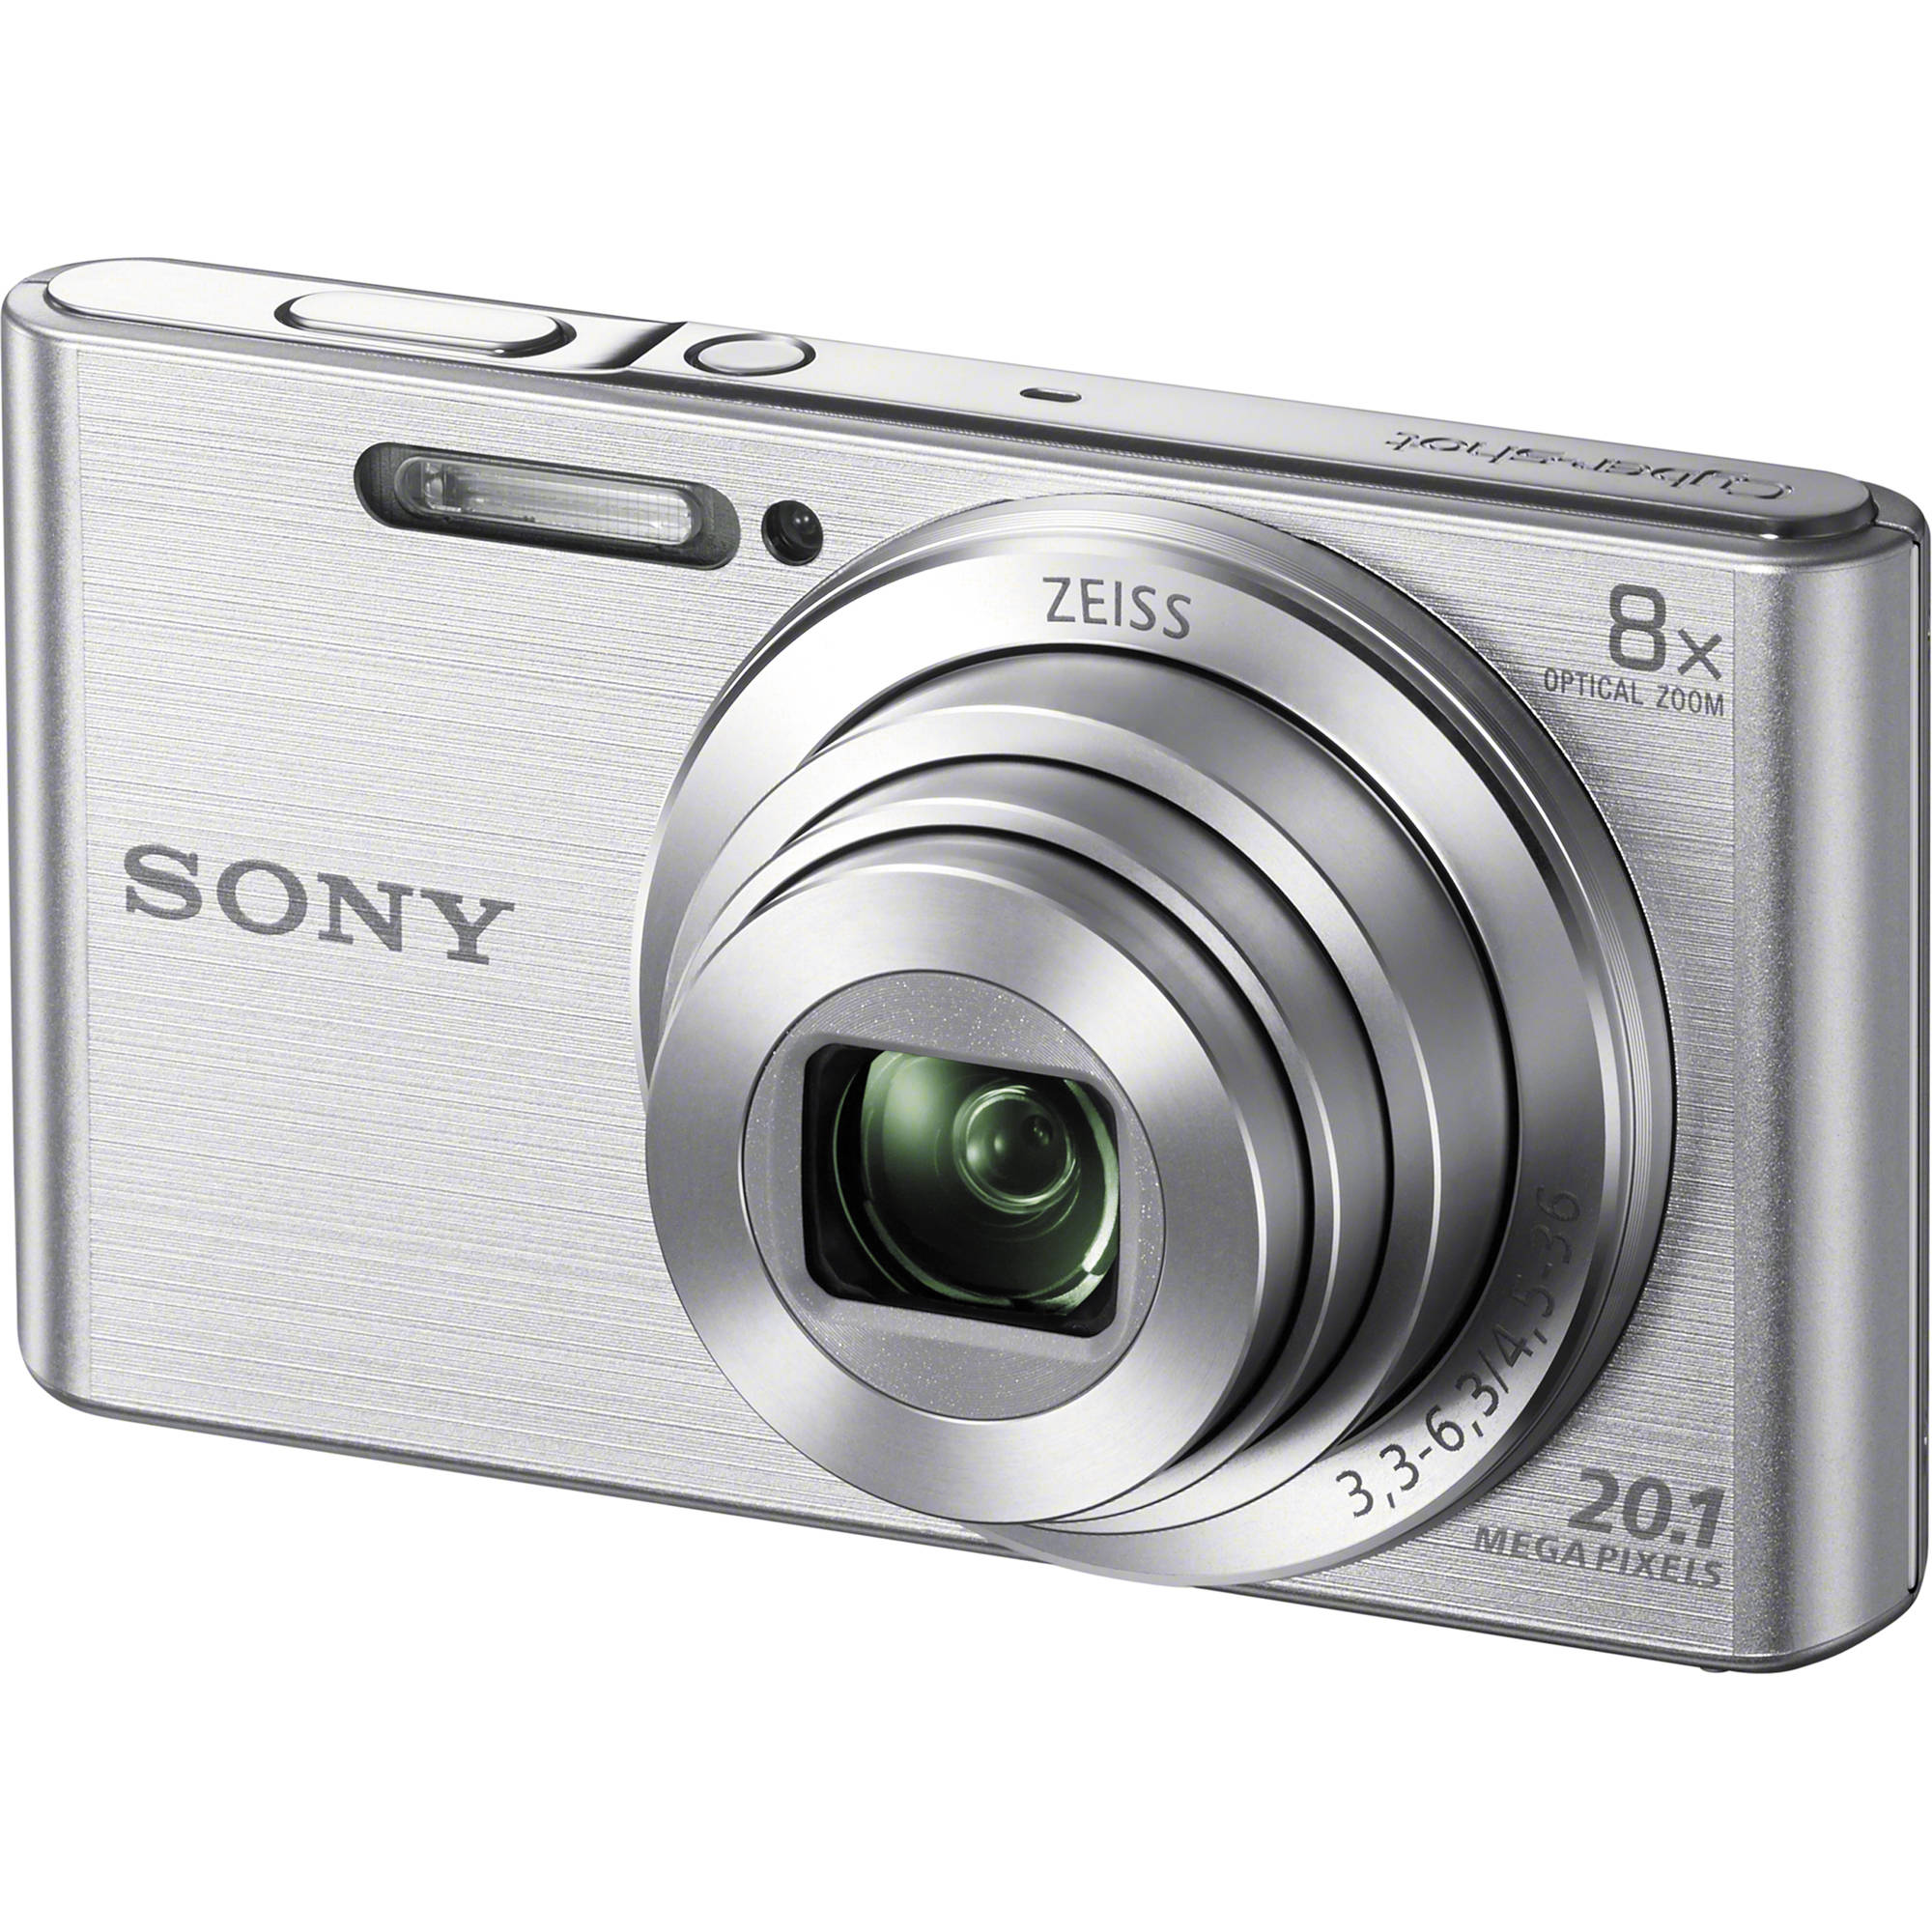 Sony DSC-W830 Digital Camera (Silver) DSC-W830 B&H Photo Video